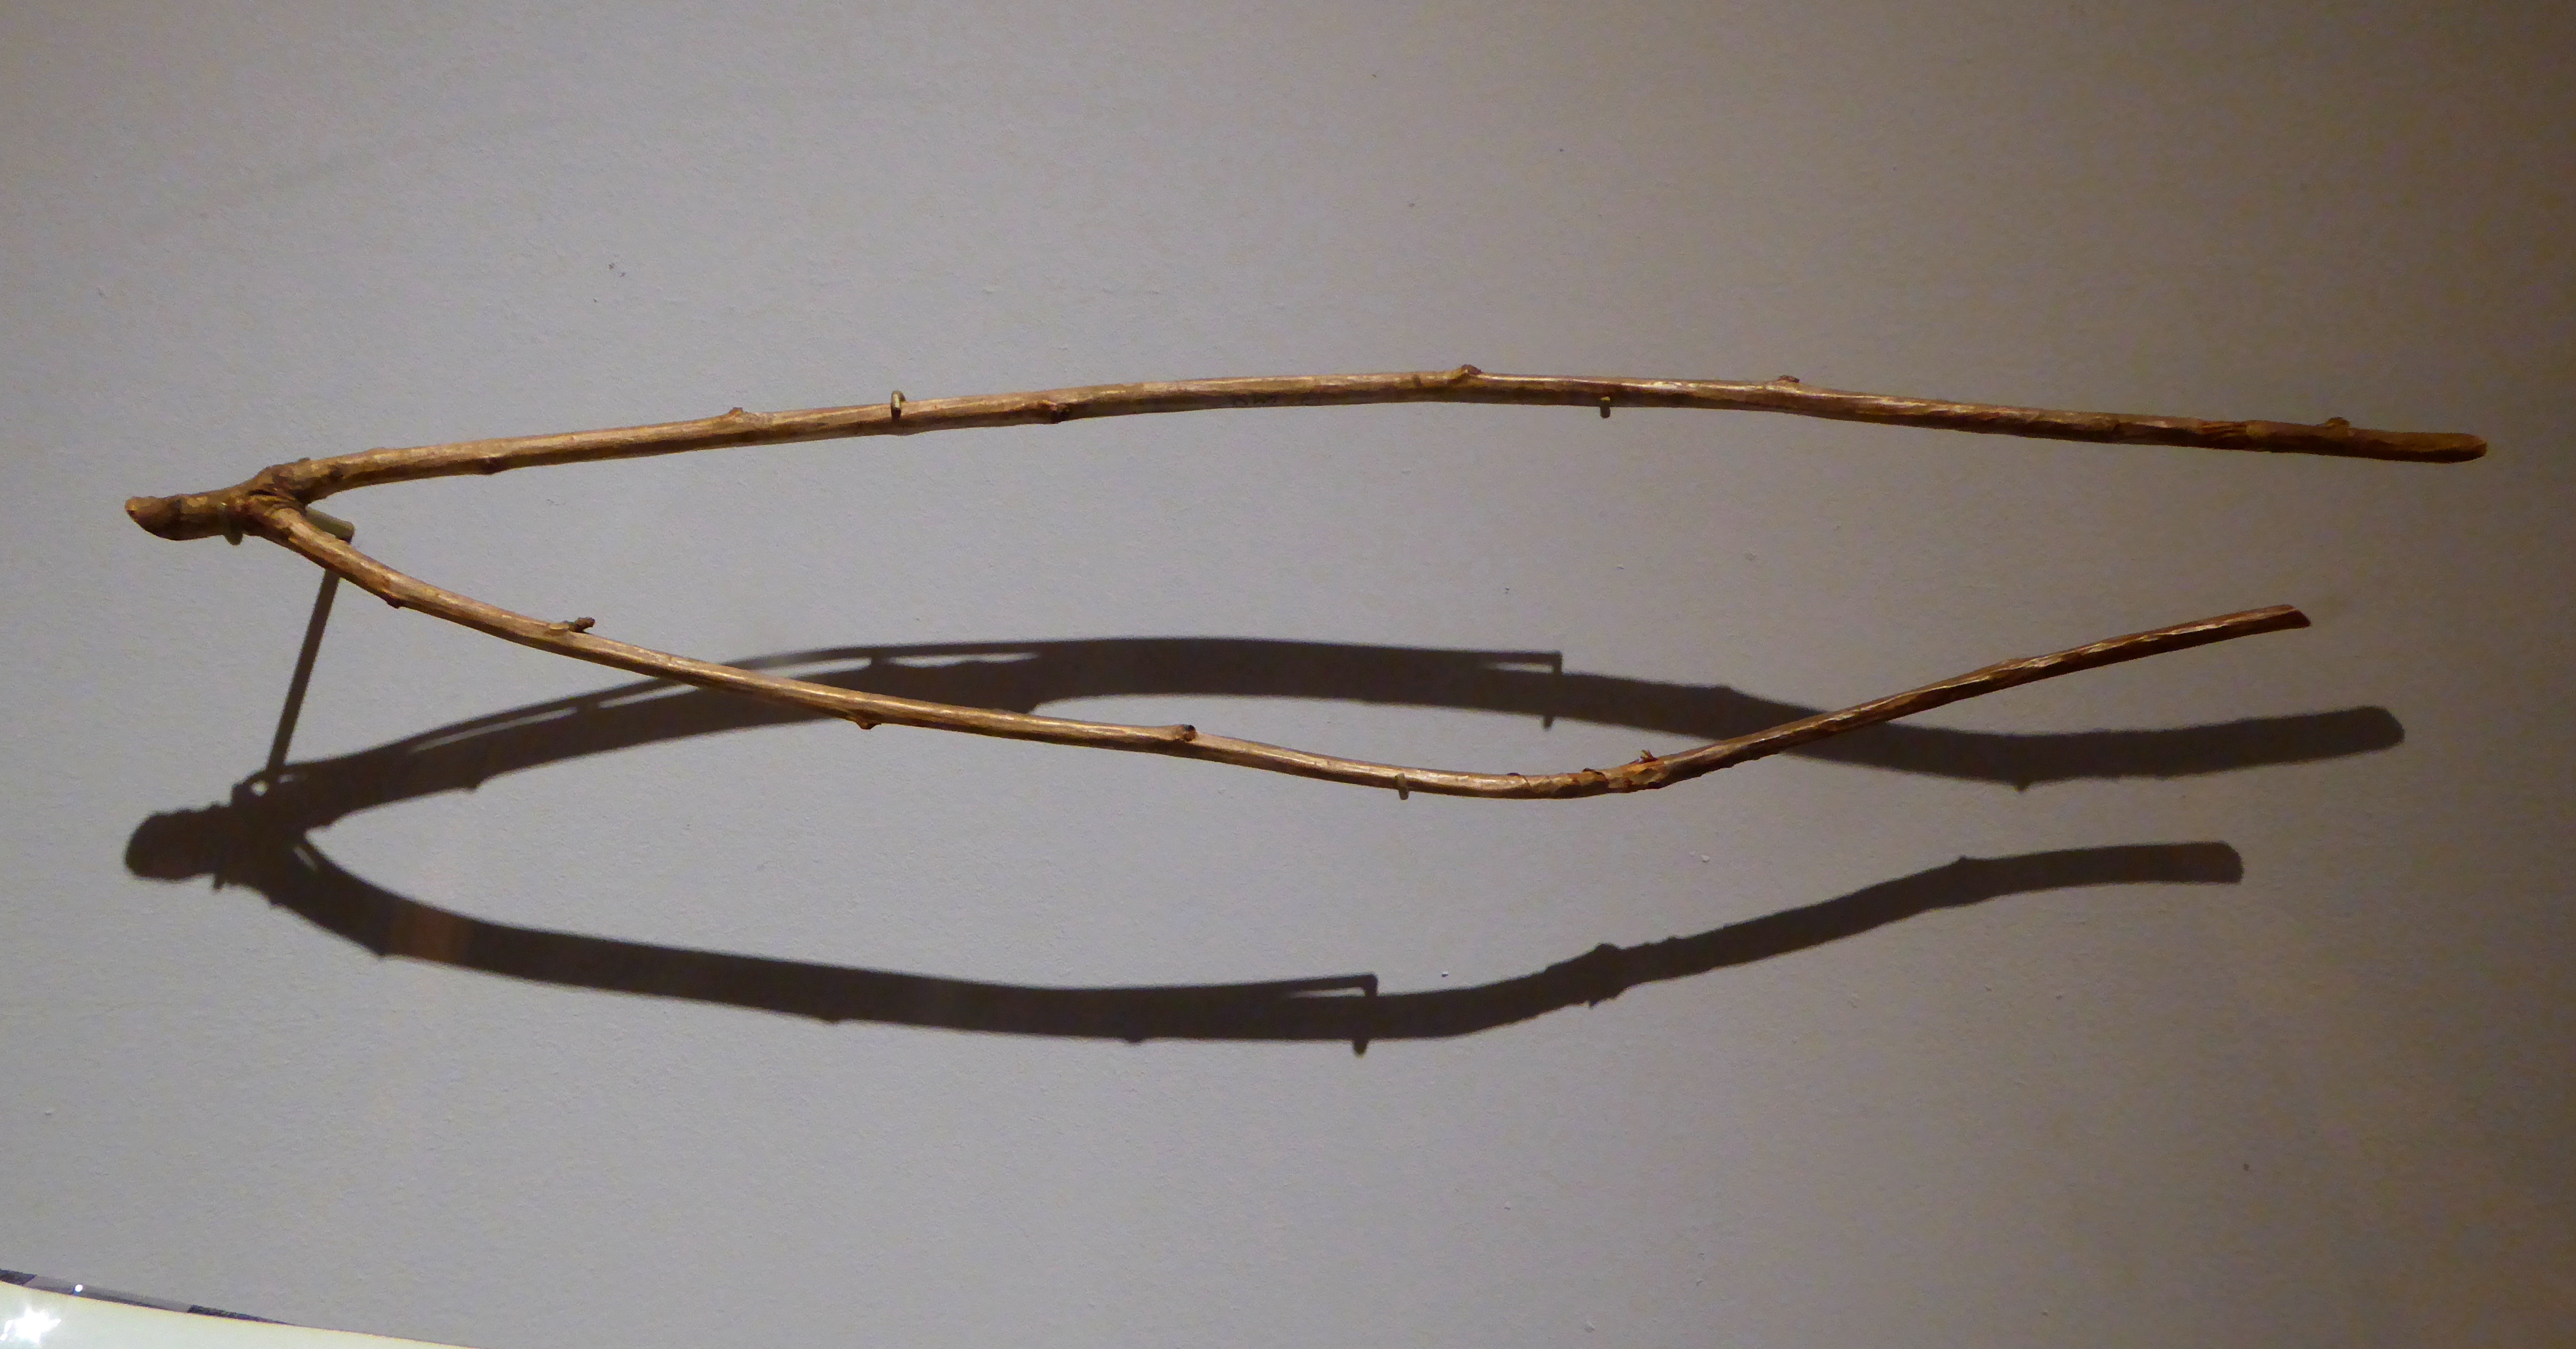 An image of a hazel dowsing rod in the Horniman Museum.